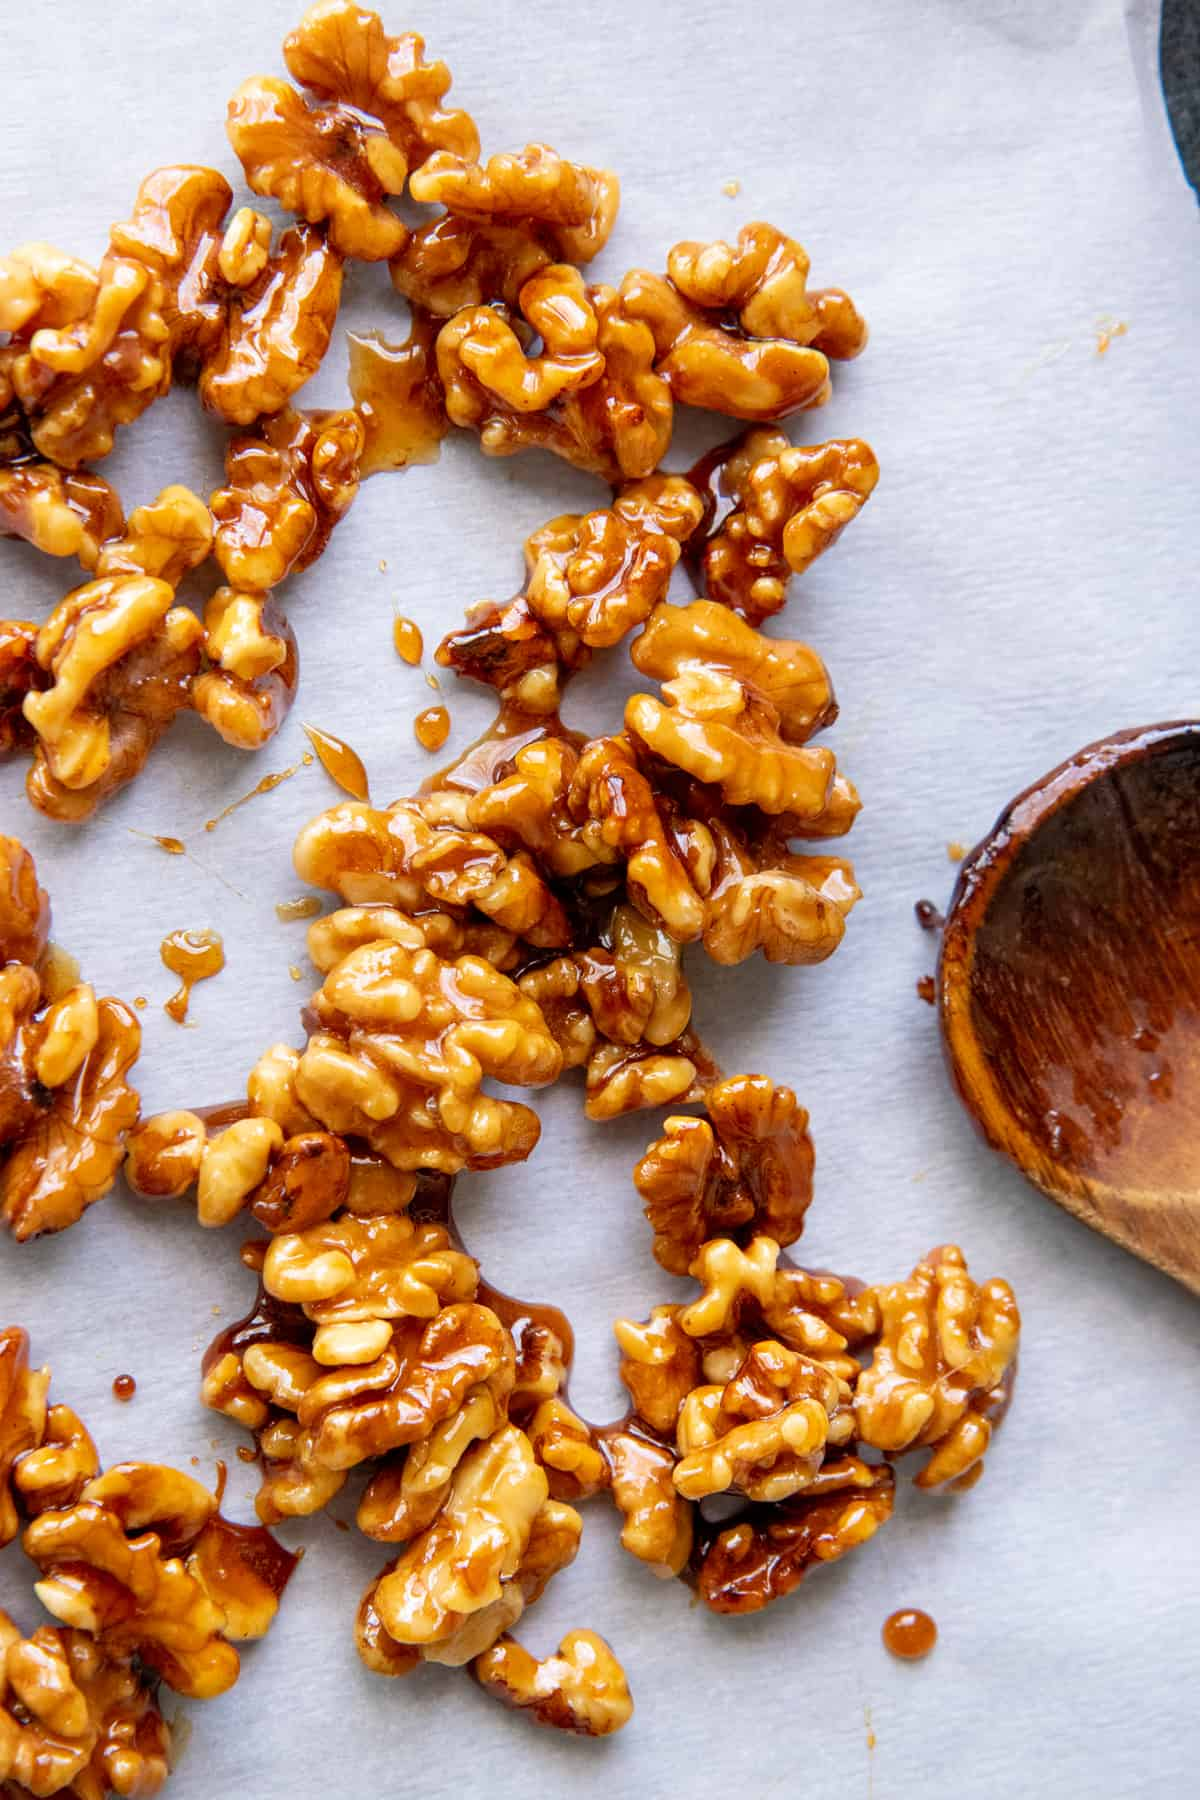 Maple candied walnuts are spread out on a piece of parchment paper.